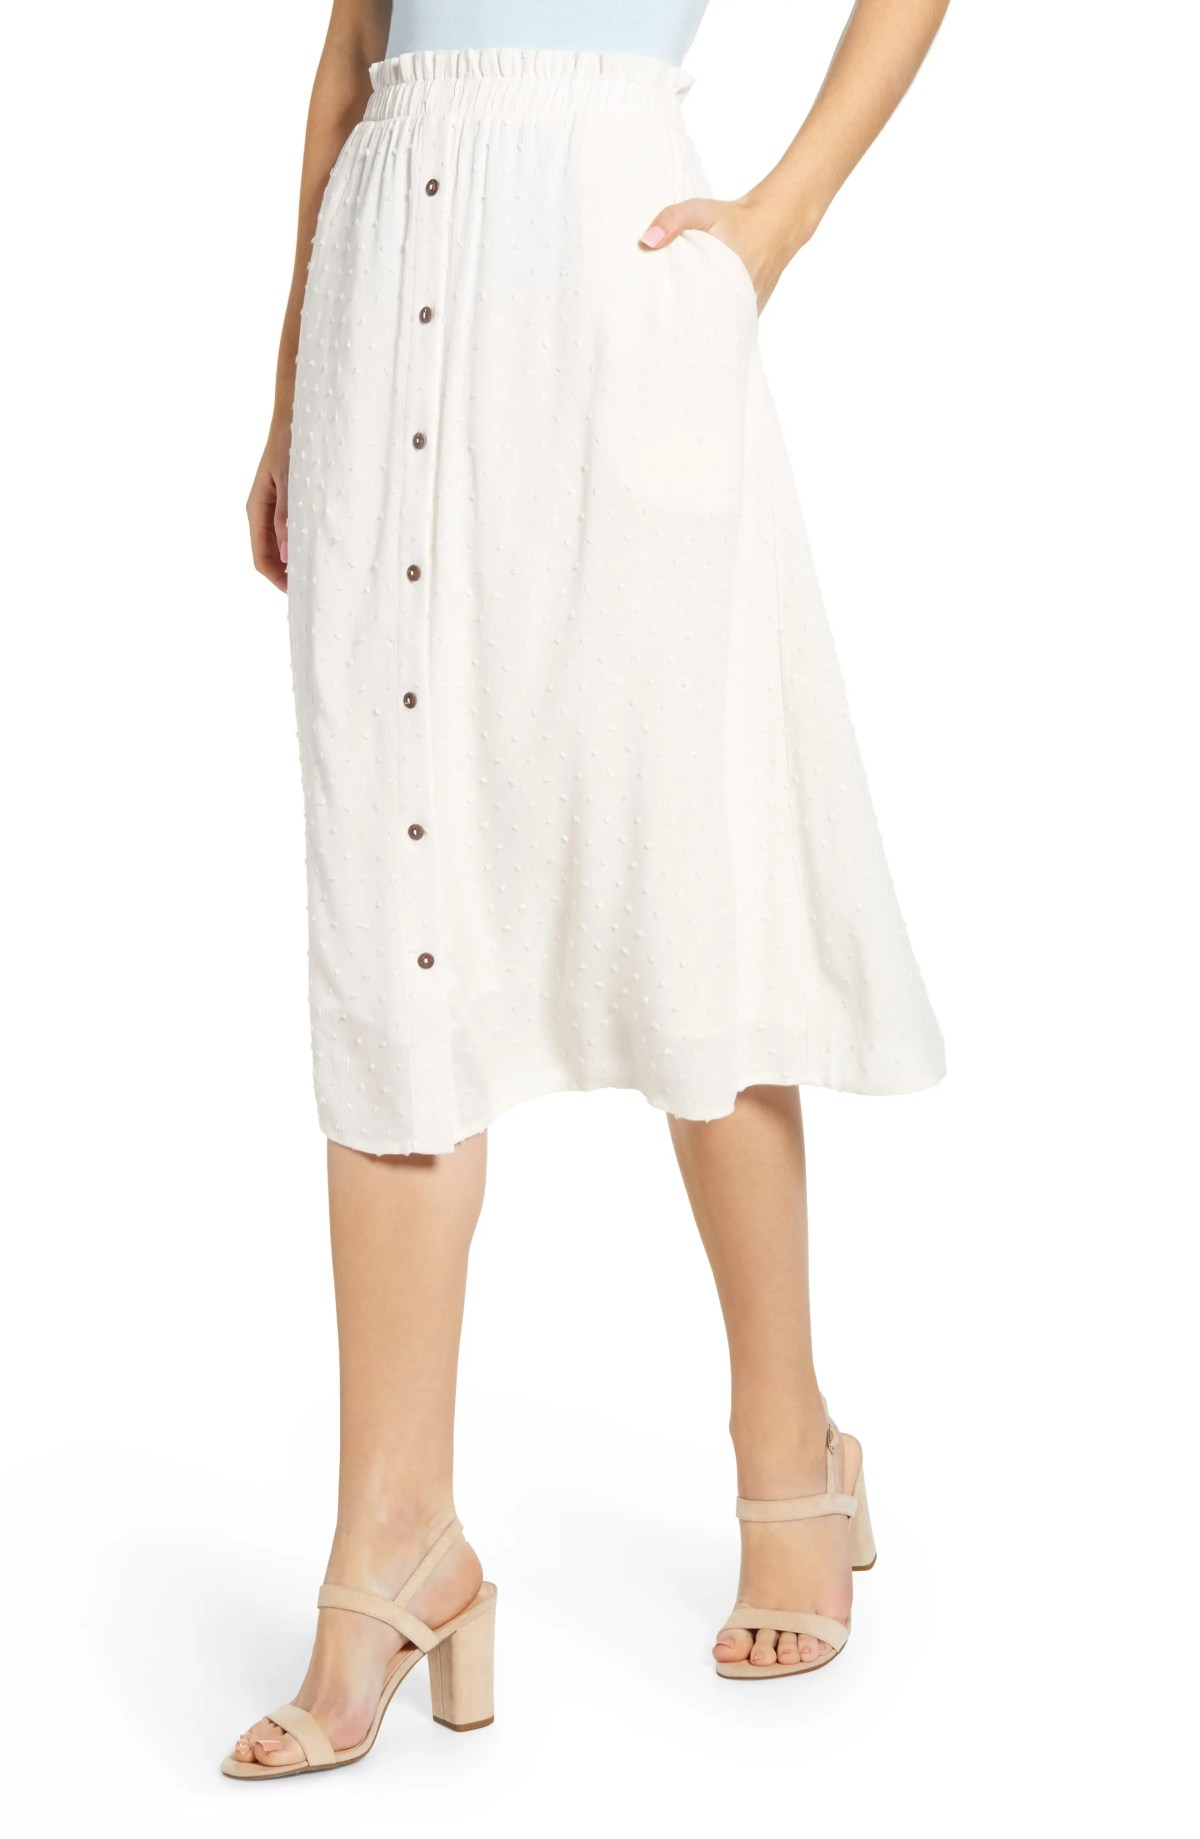 GIBSON x The Motherchic Siesta Button-Down Midi Skirt, Main, color, IVORY CLOUD SWISS DOT